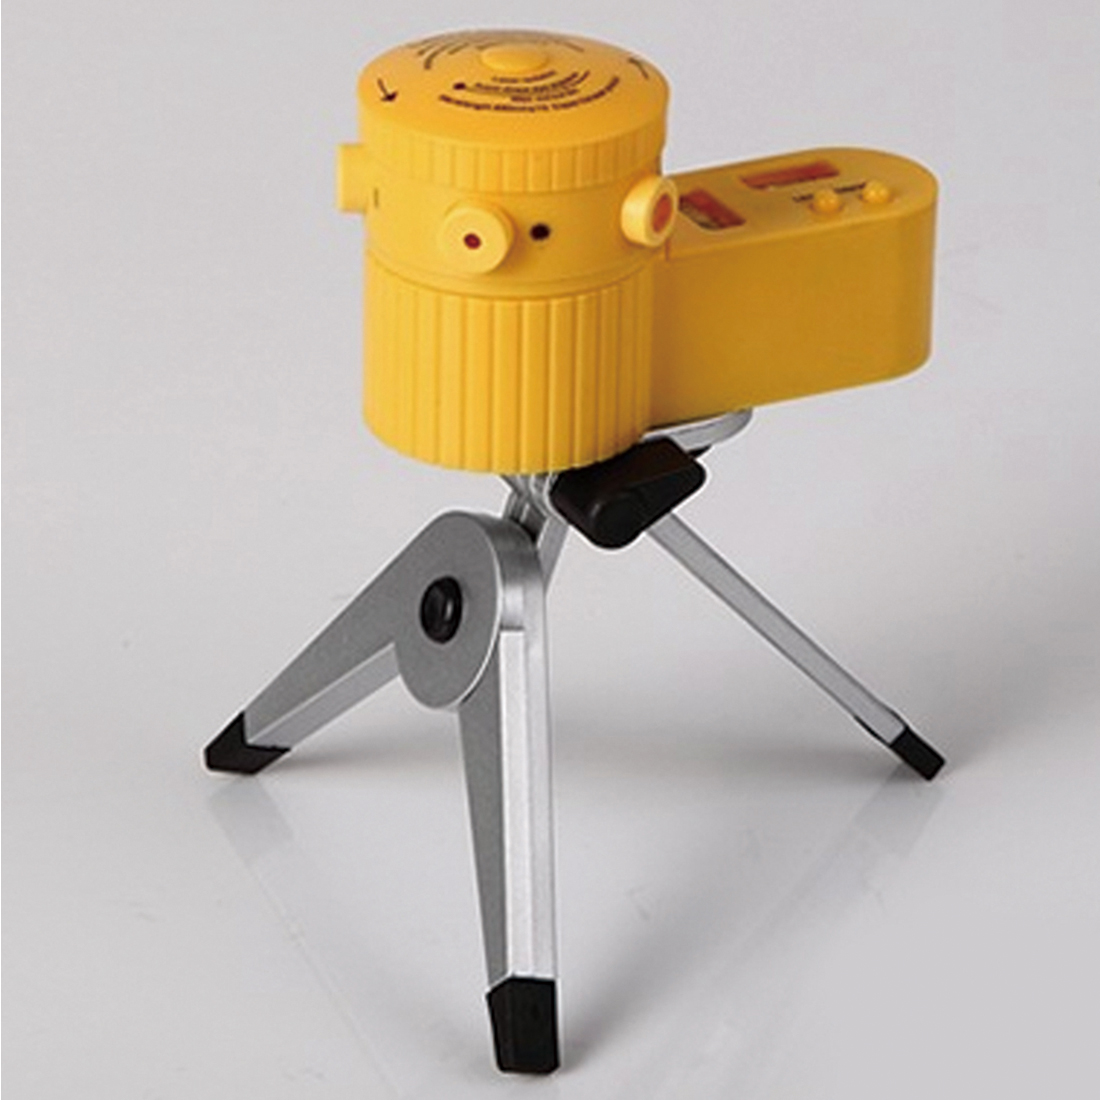 Multifunction Cross Laser Level Leveler Vertical Horizontal Line Tool With Tripod Worldwide